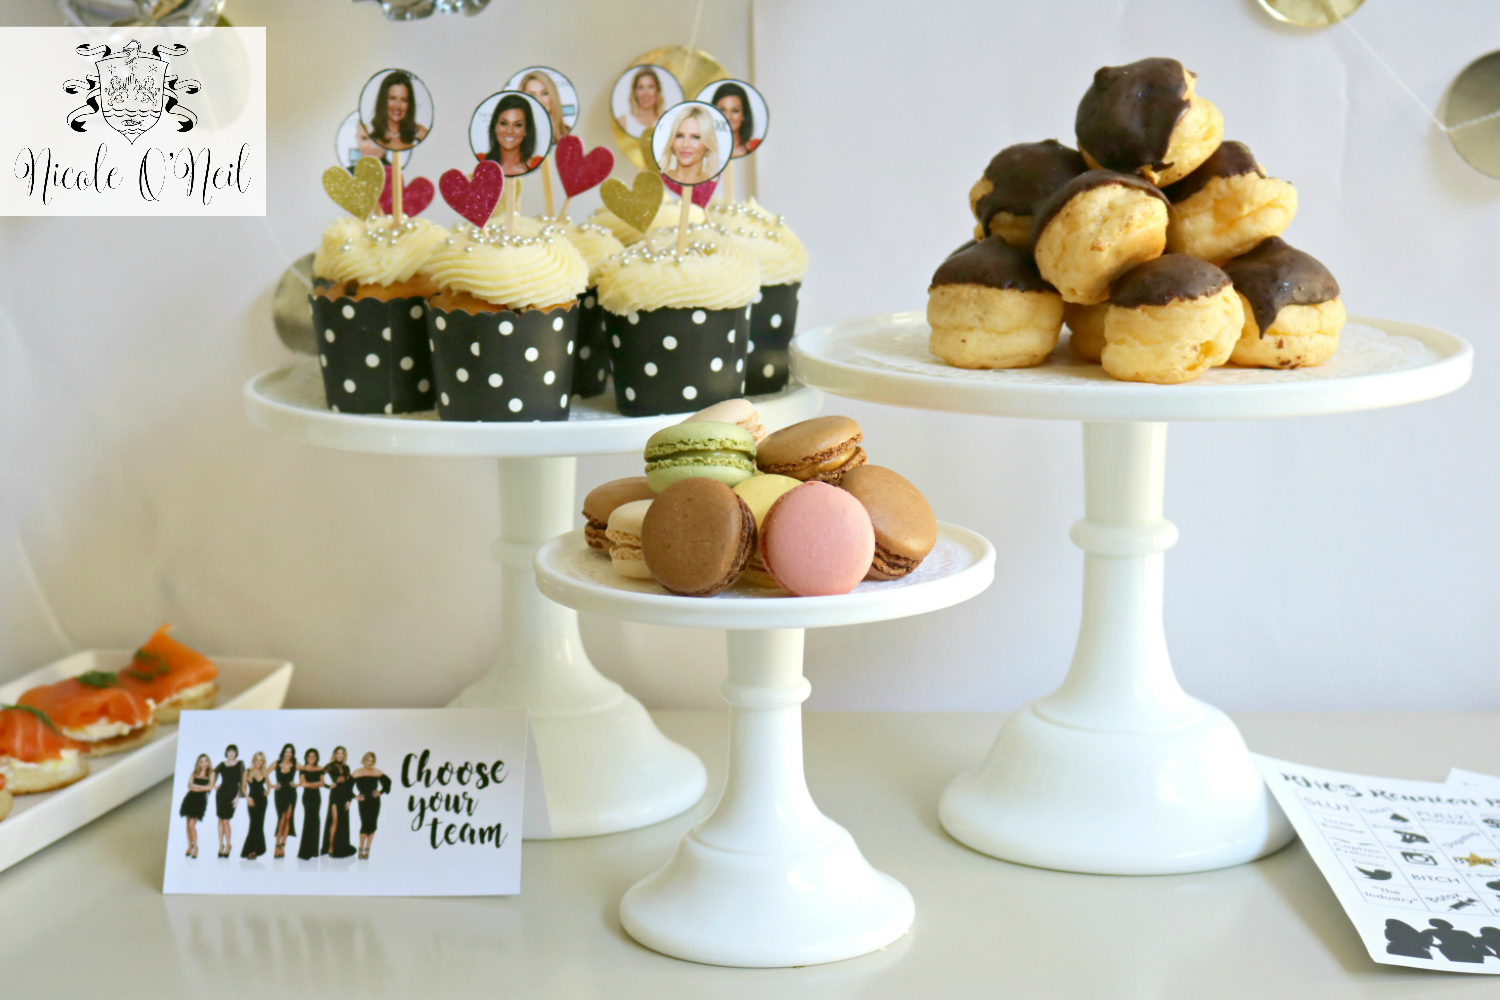 Real Housewives of Sydney Cupcakes - Choose Your Favourite Housewives - DIY Real Housewives of Sydney Reunion Party